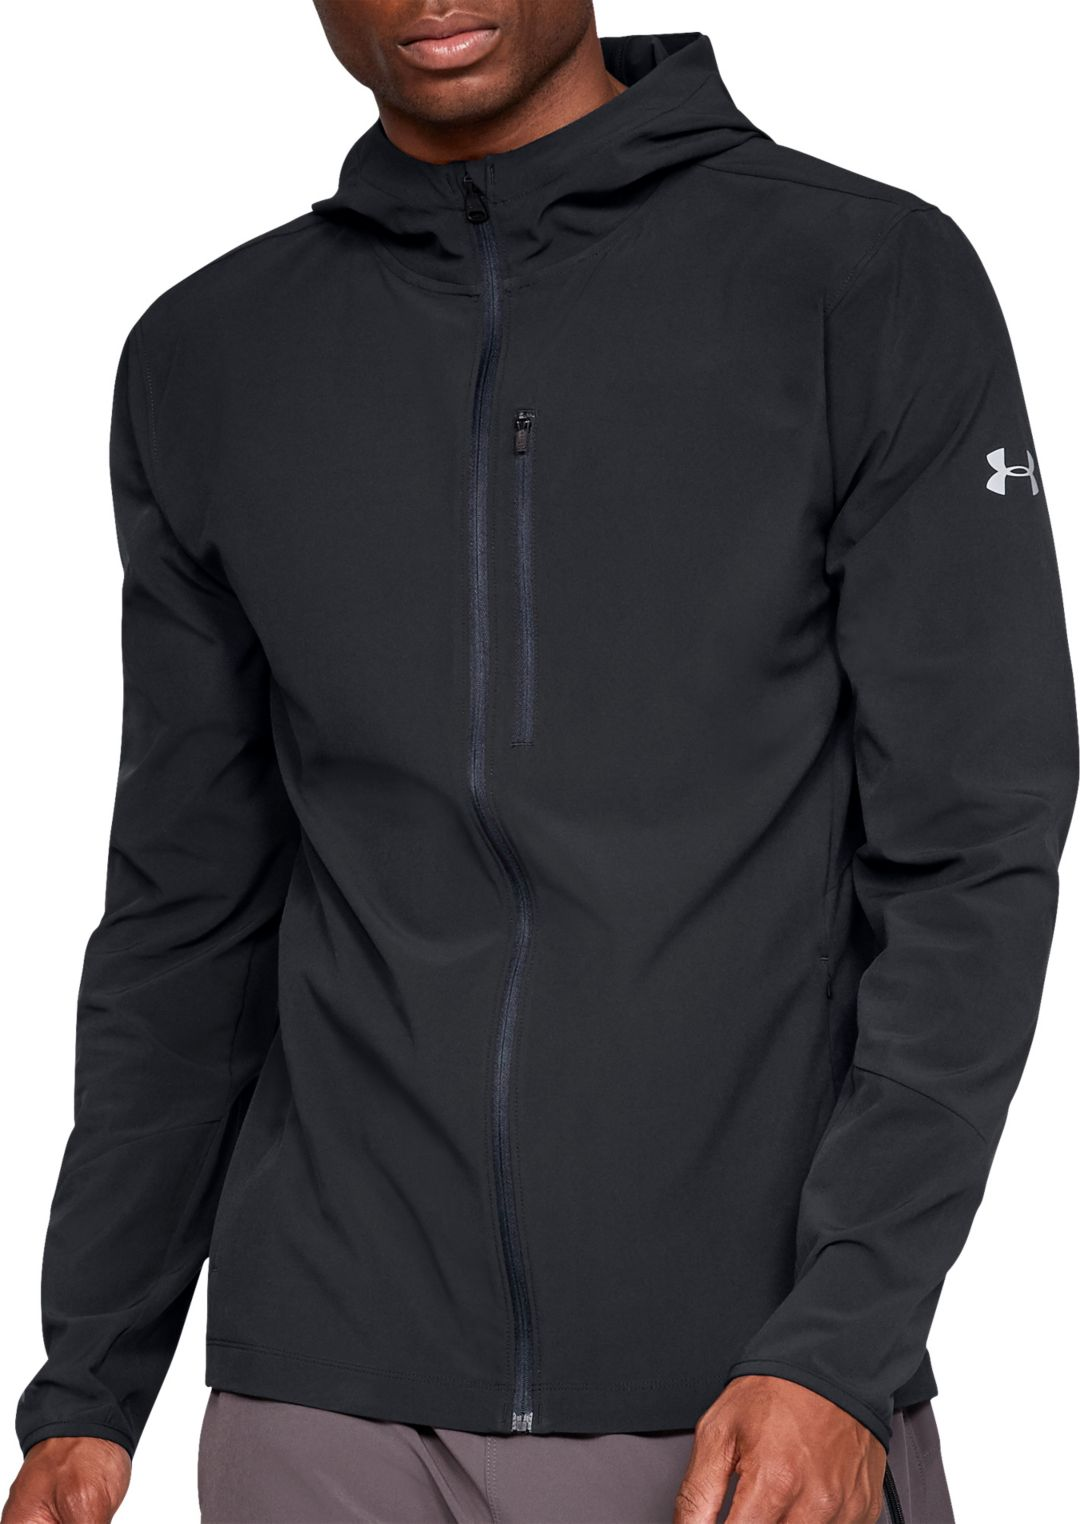 a627b4f11 Under Armour Men's Outrun The Storm Jacket | DICK'S Sporting Goods